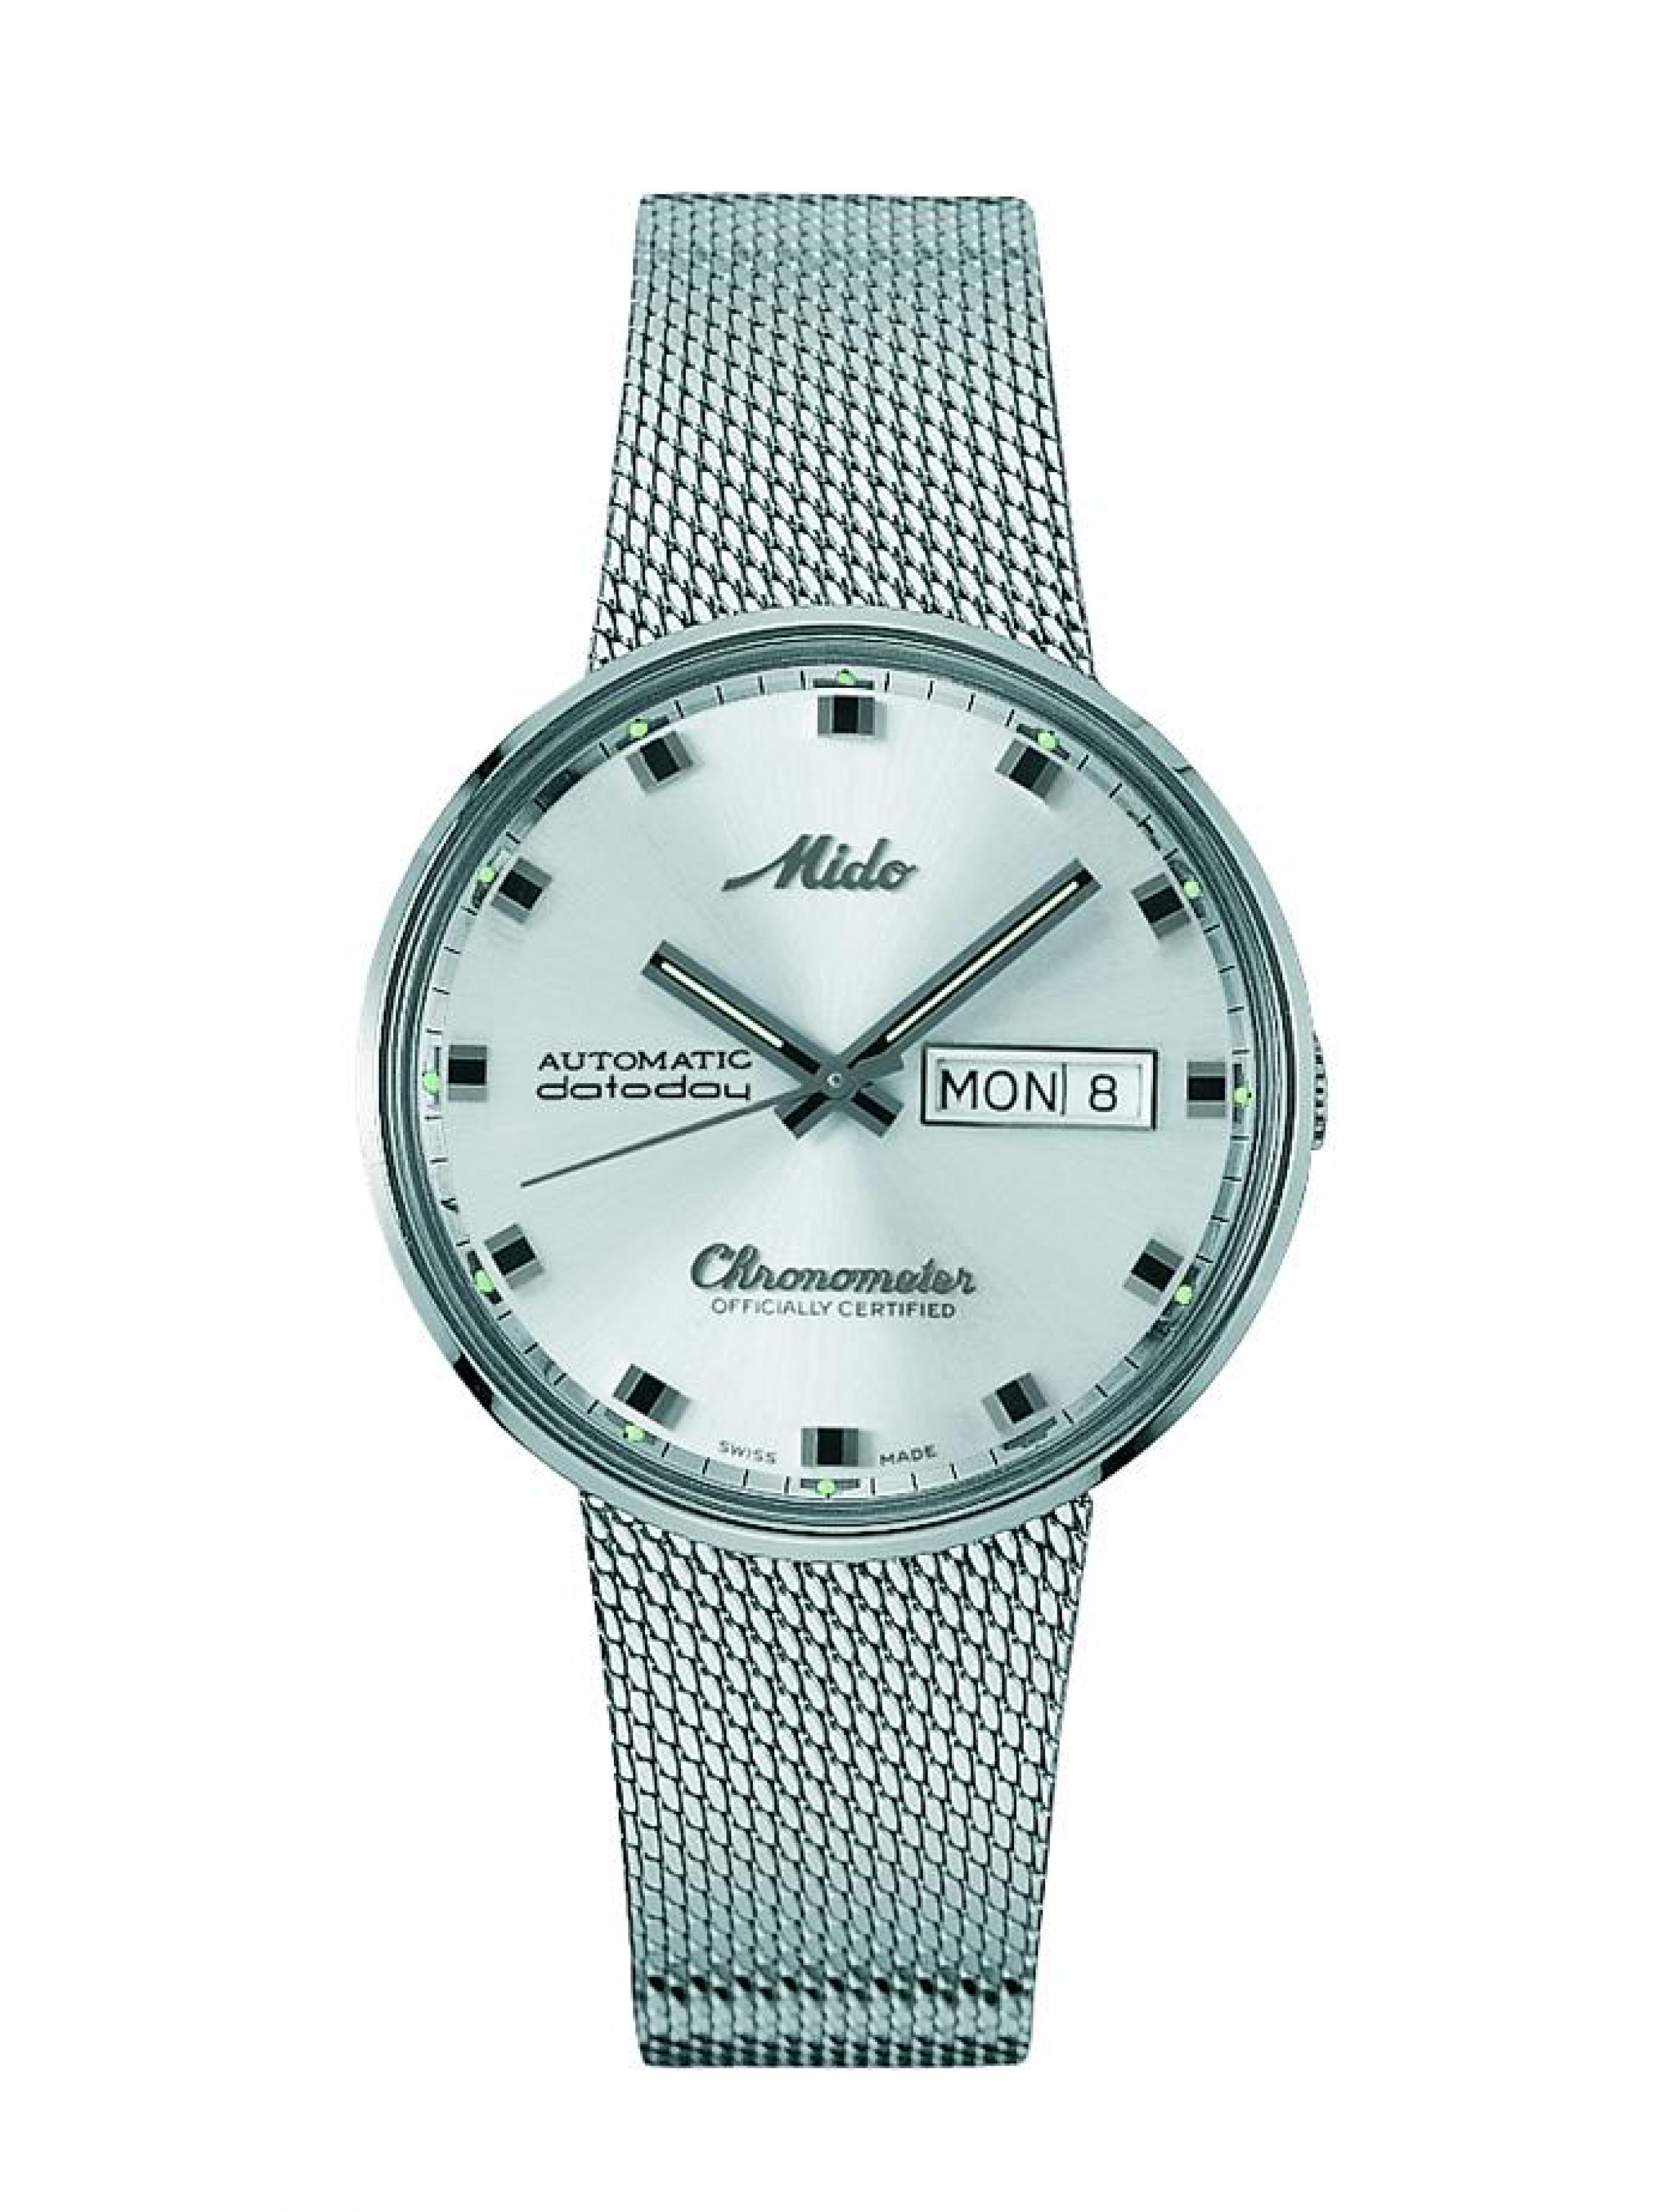 Mido Commander Gent Chronometer M8429.4.C1.11